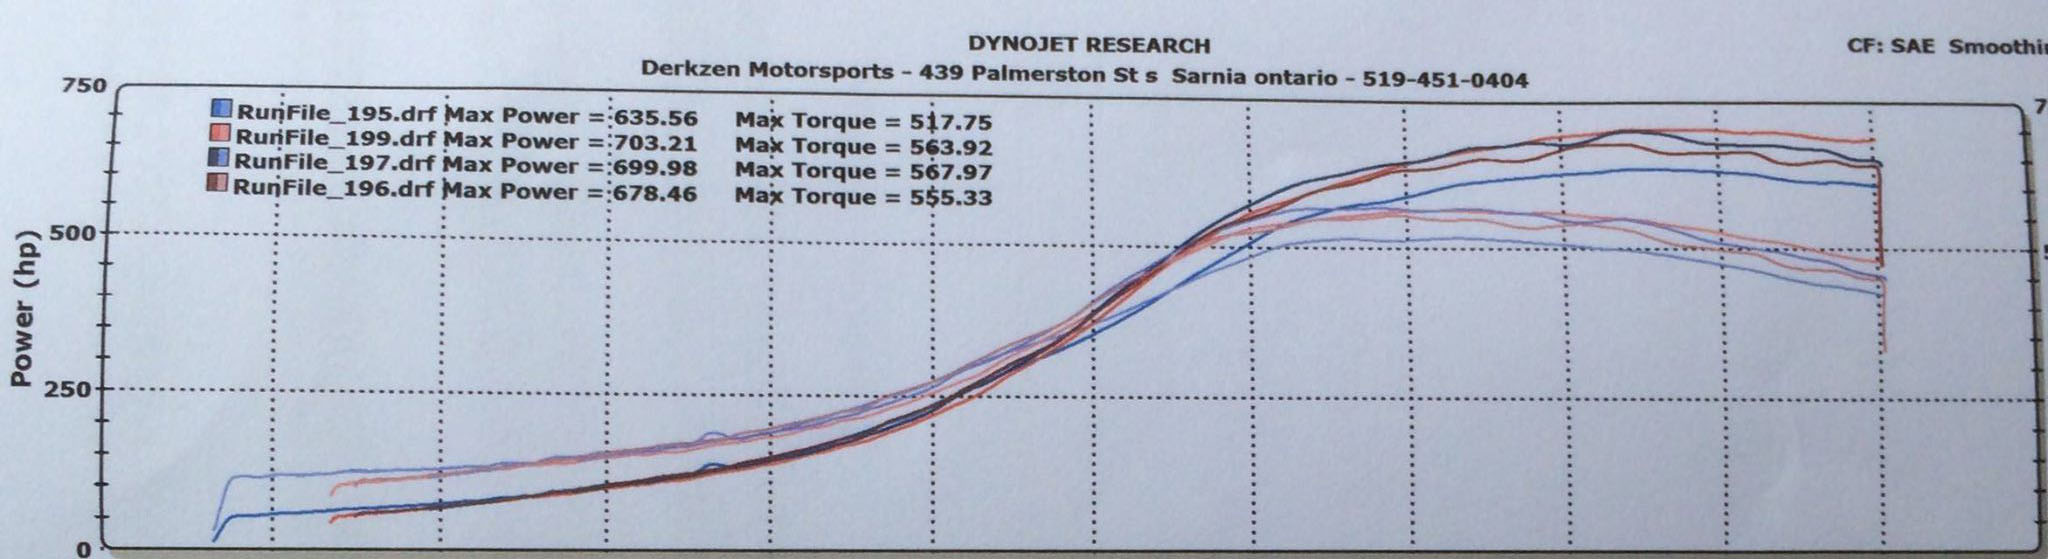 1996 White Nissan 240SX S14 vr6 turbo powered Dyno Graph